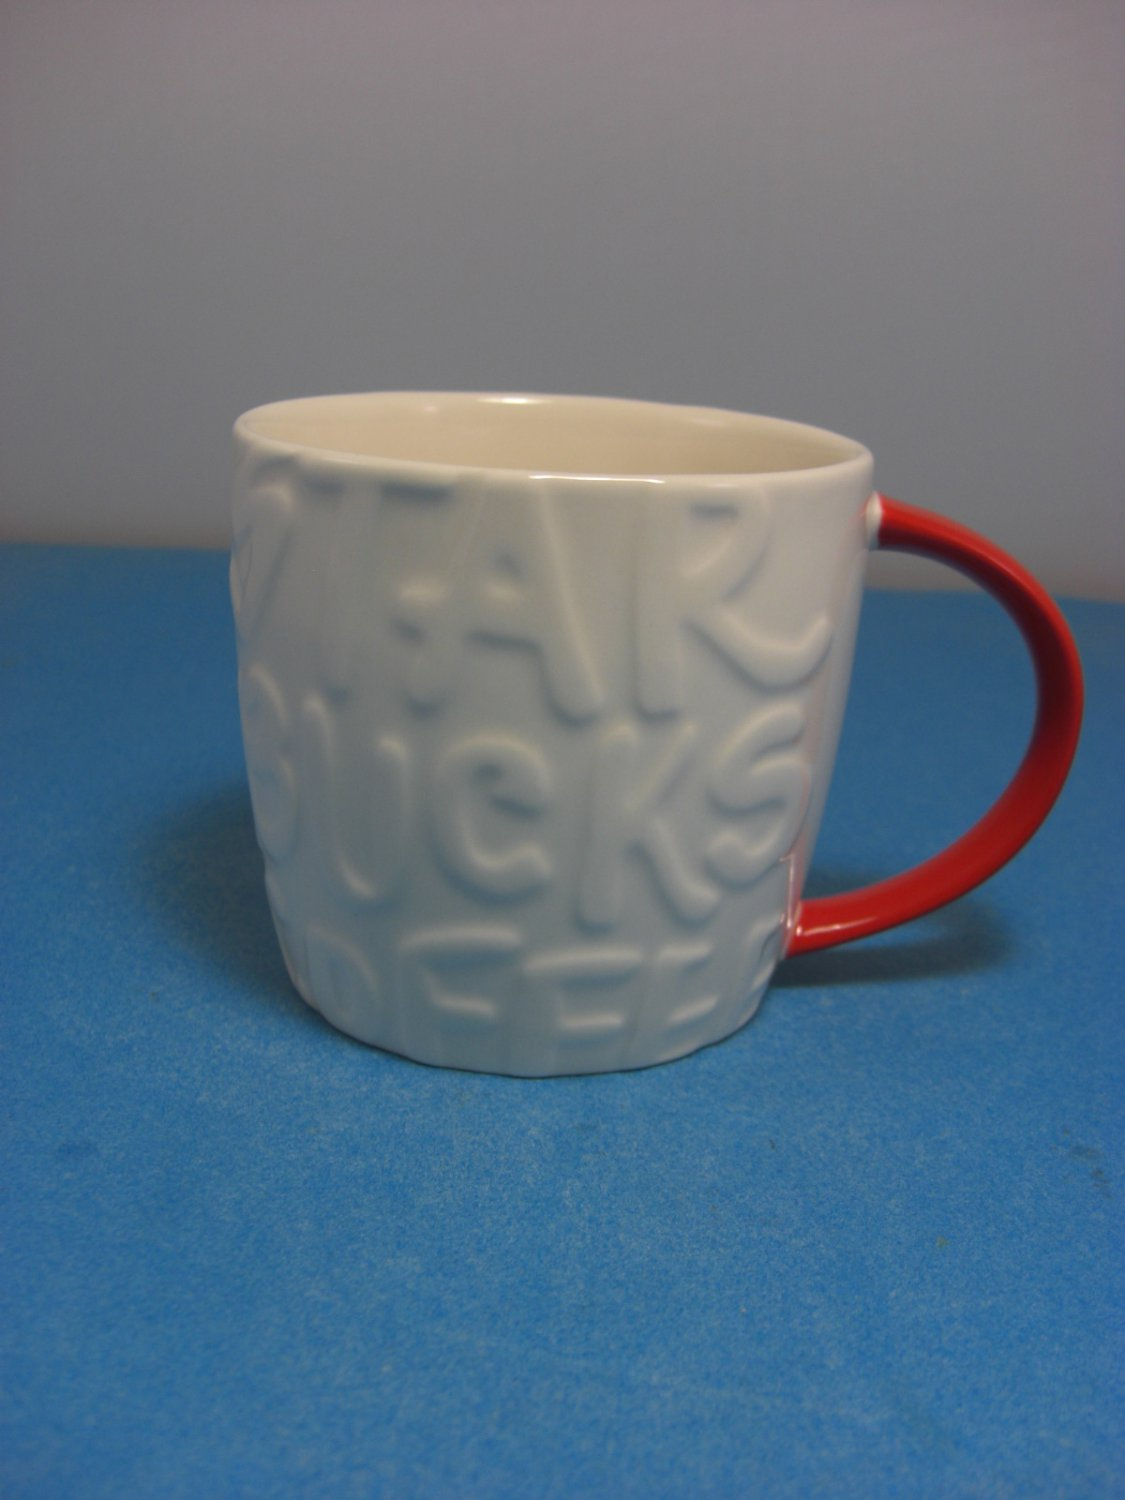 Starbucks Coffee Graffiti Mug Crhistmas 2015 White Mug Red